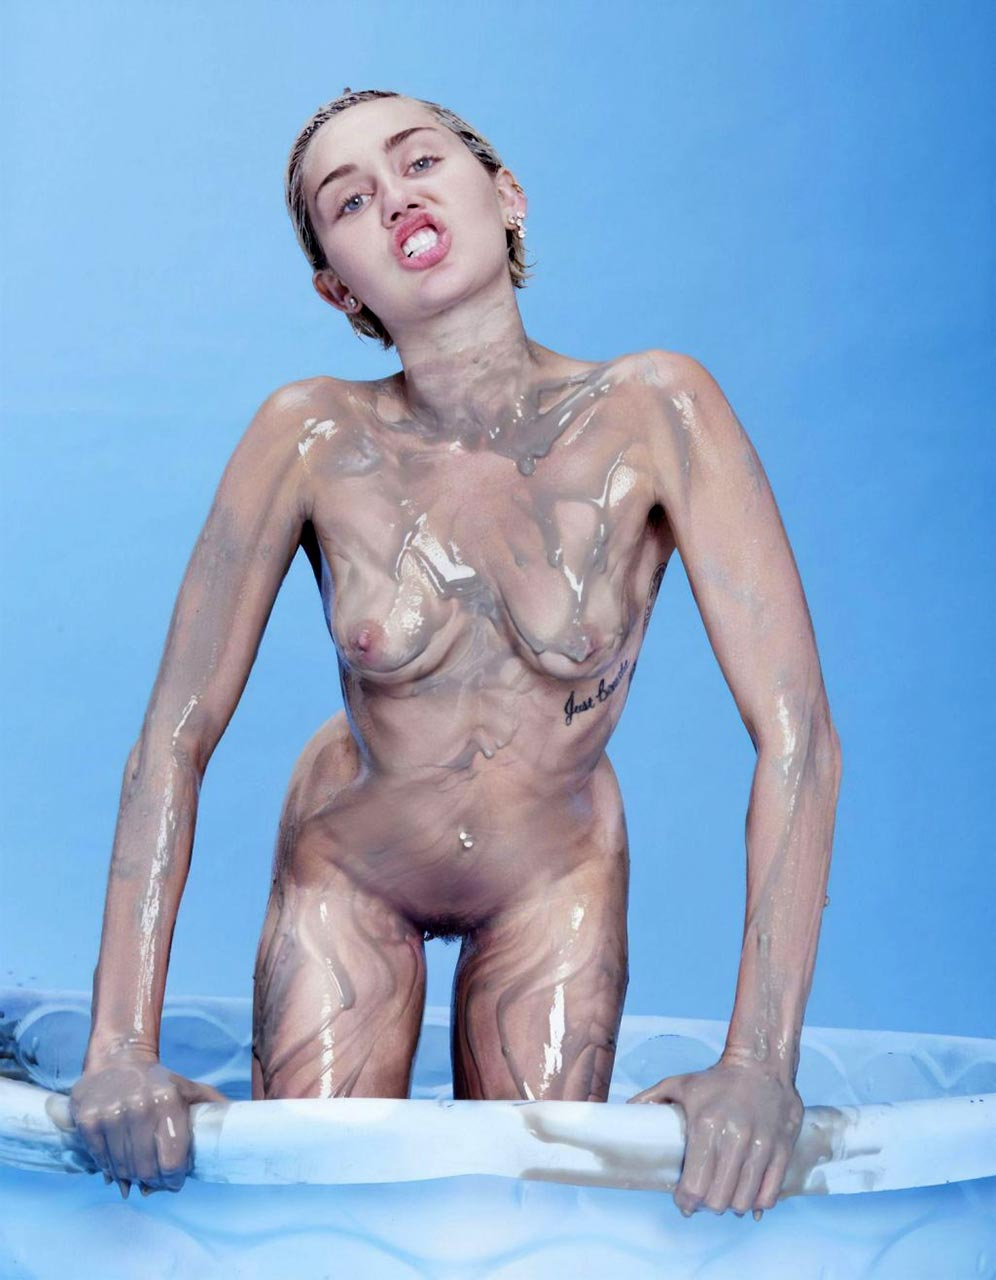 Miley Cyrus Nude Post